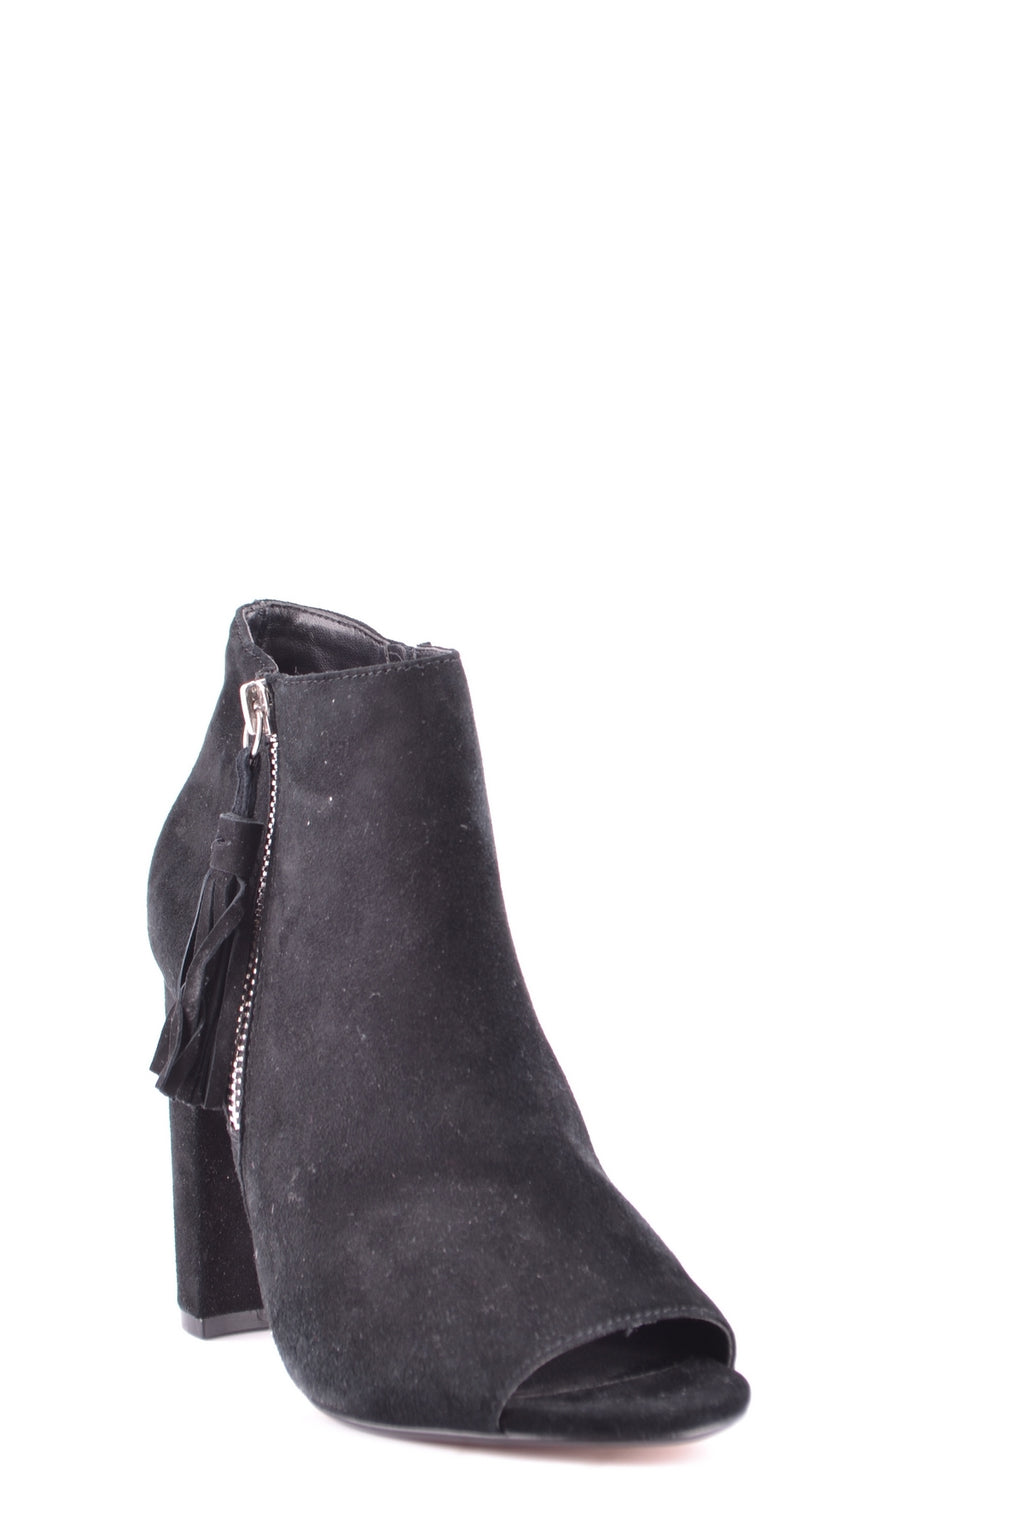 Shoes Steve Madden ankle boots - KATANA FASHION BOUTIQUE